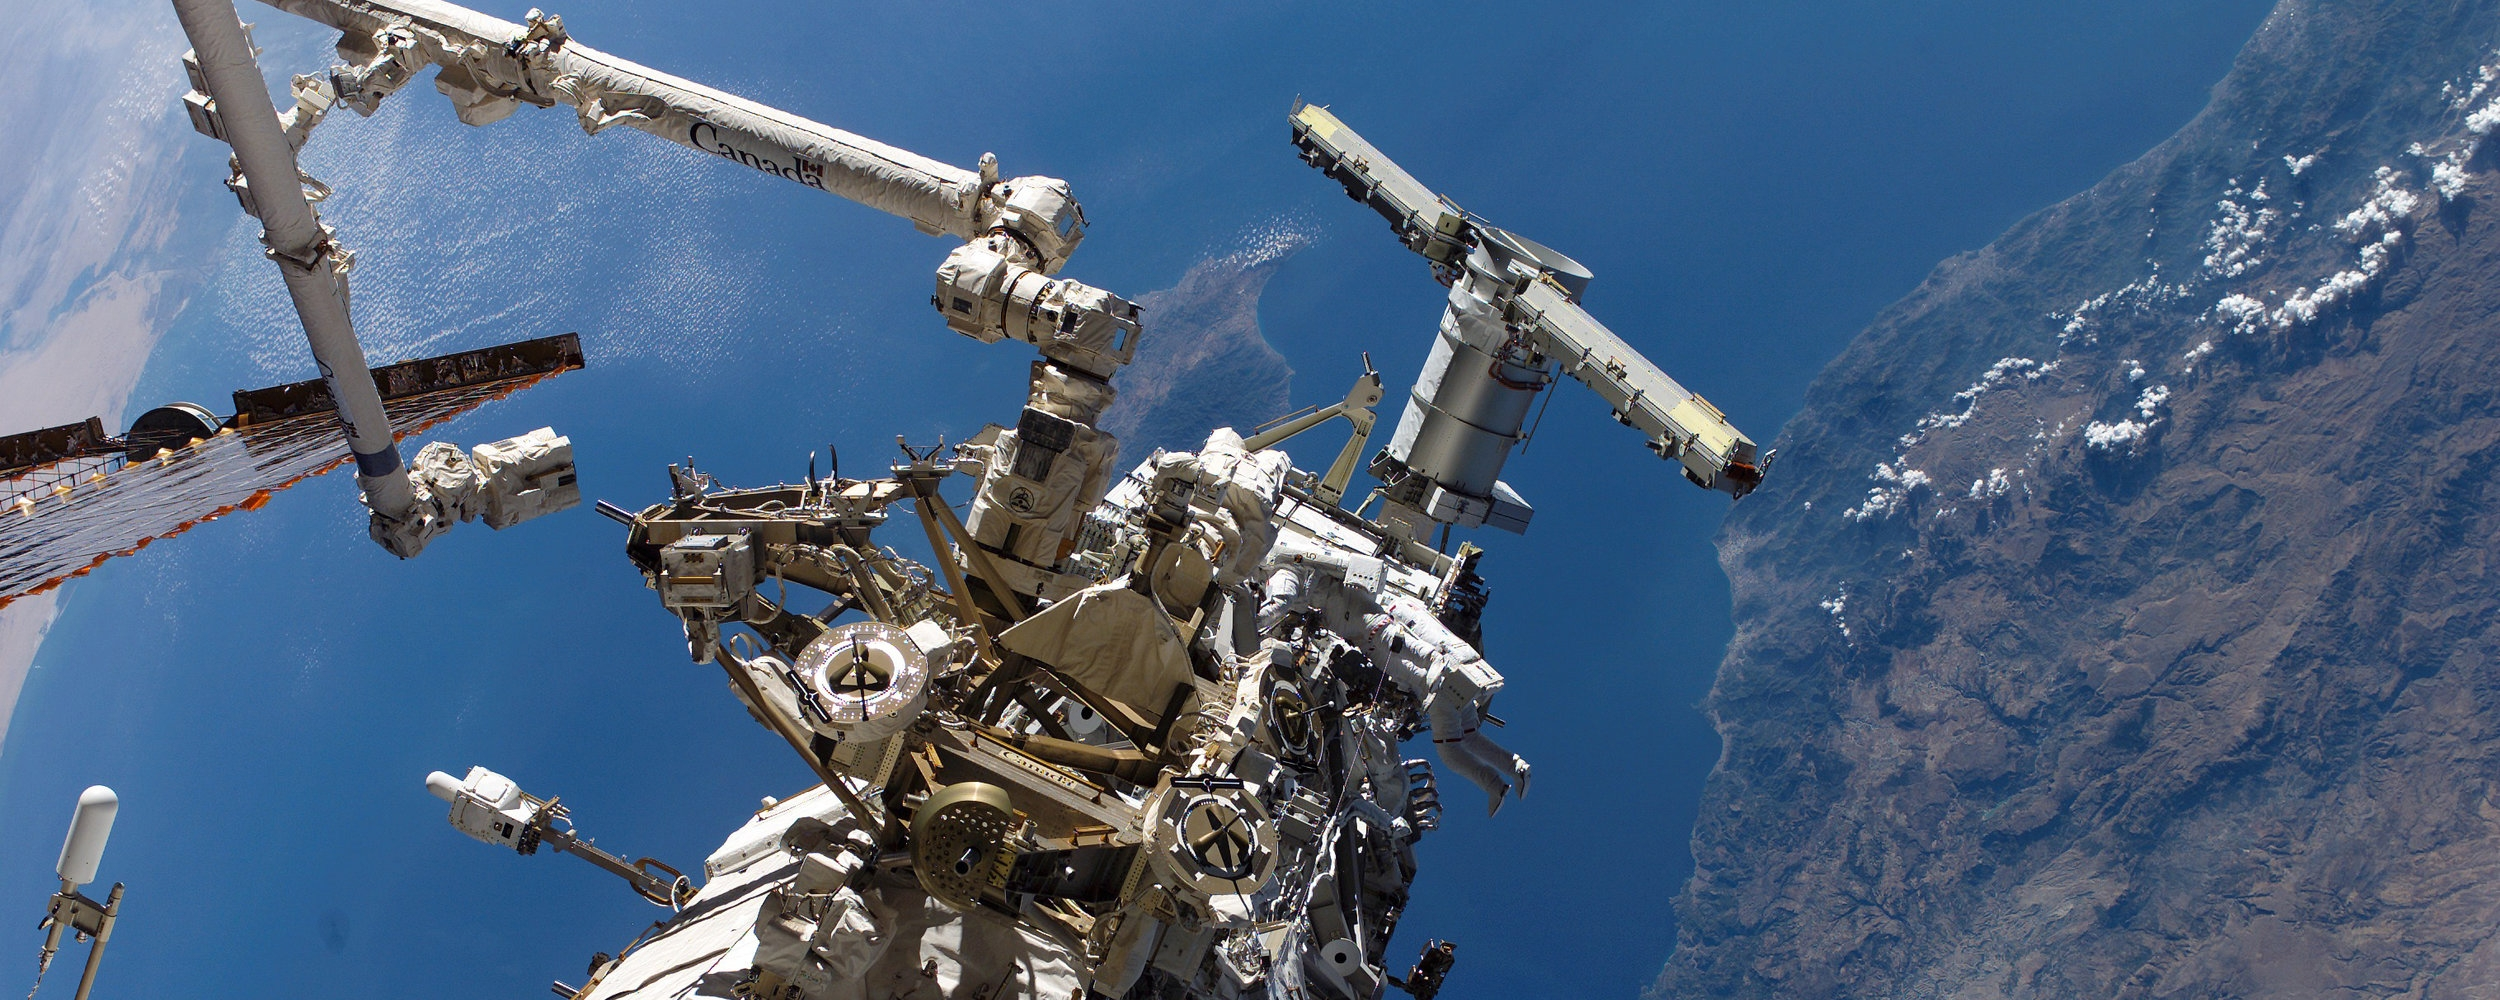 Astronauts perform a space walk on the International Space Station.